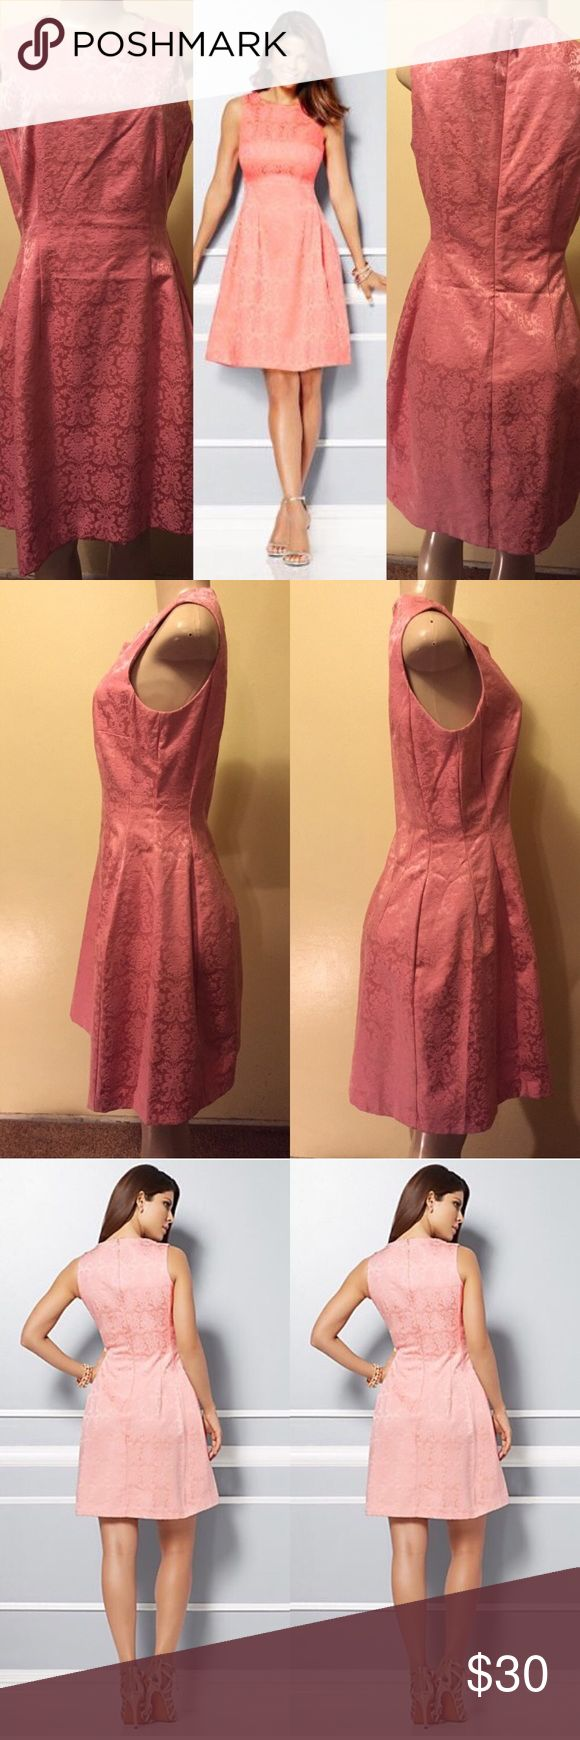 Dress By Eva Mendes CollectionMaria Jacquard dress Pink dress Mini by Eva Mendes Collection. Excellent Condition. Worn once! Like new! No stains nor rips! Eva Mendes Dresses Mini